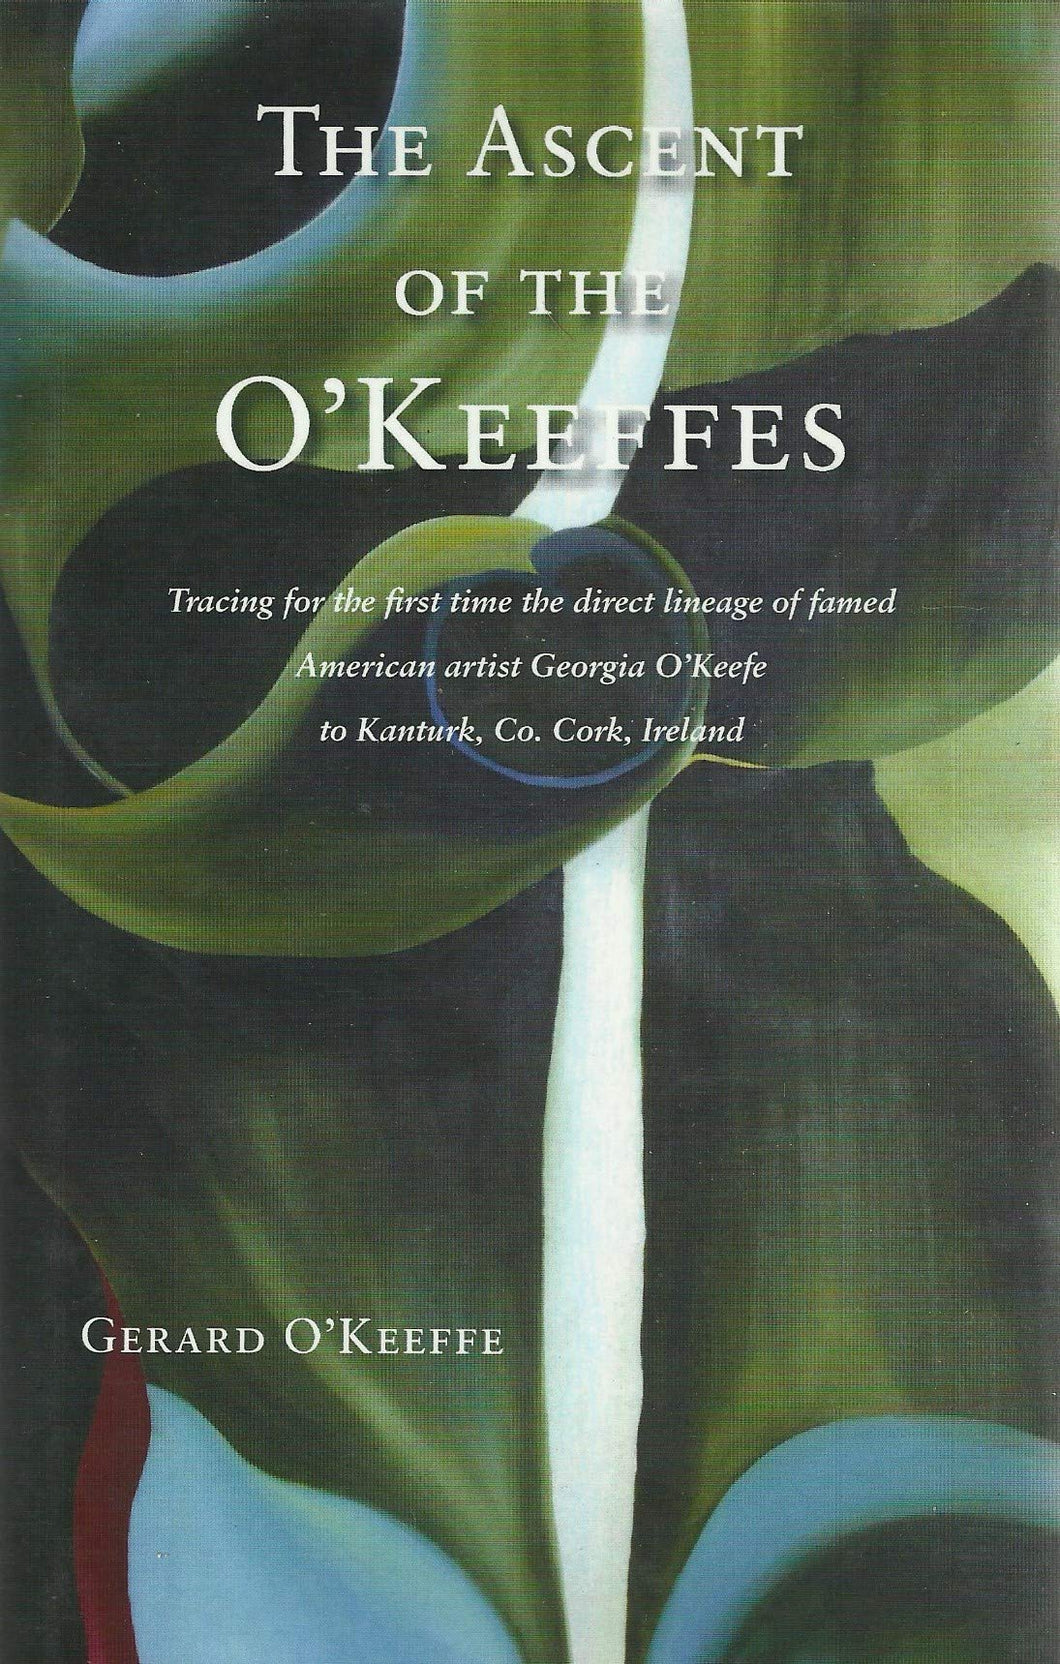 The Ascent of the O'Keeffes: Tracing for the first time the direct lineage of famed American artist Georgia O'Keefe to Kanturk, Co Cork, Ireland